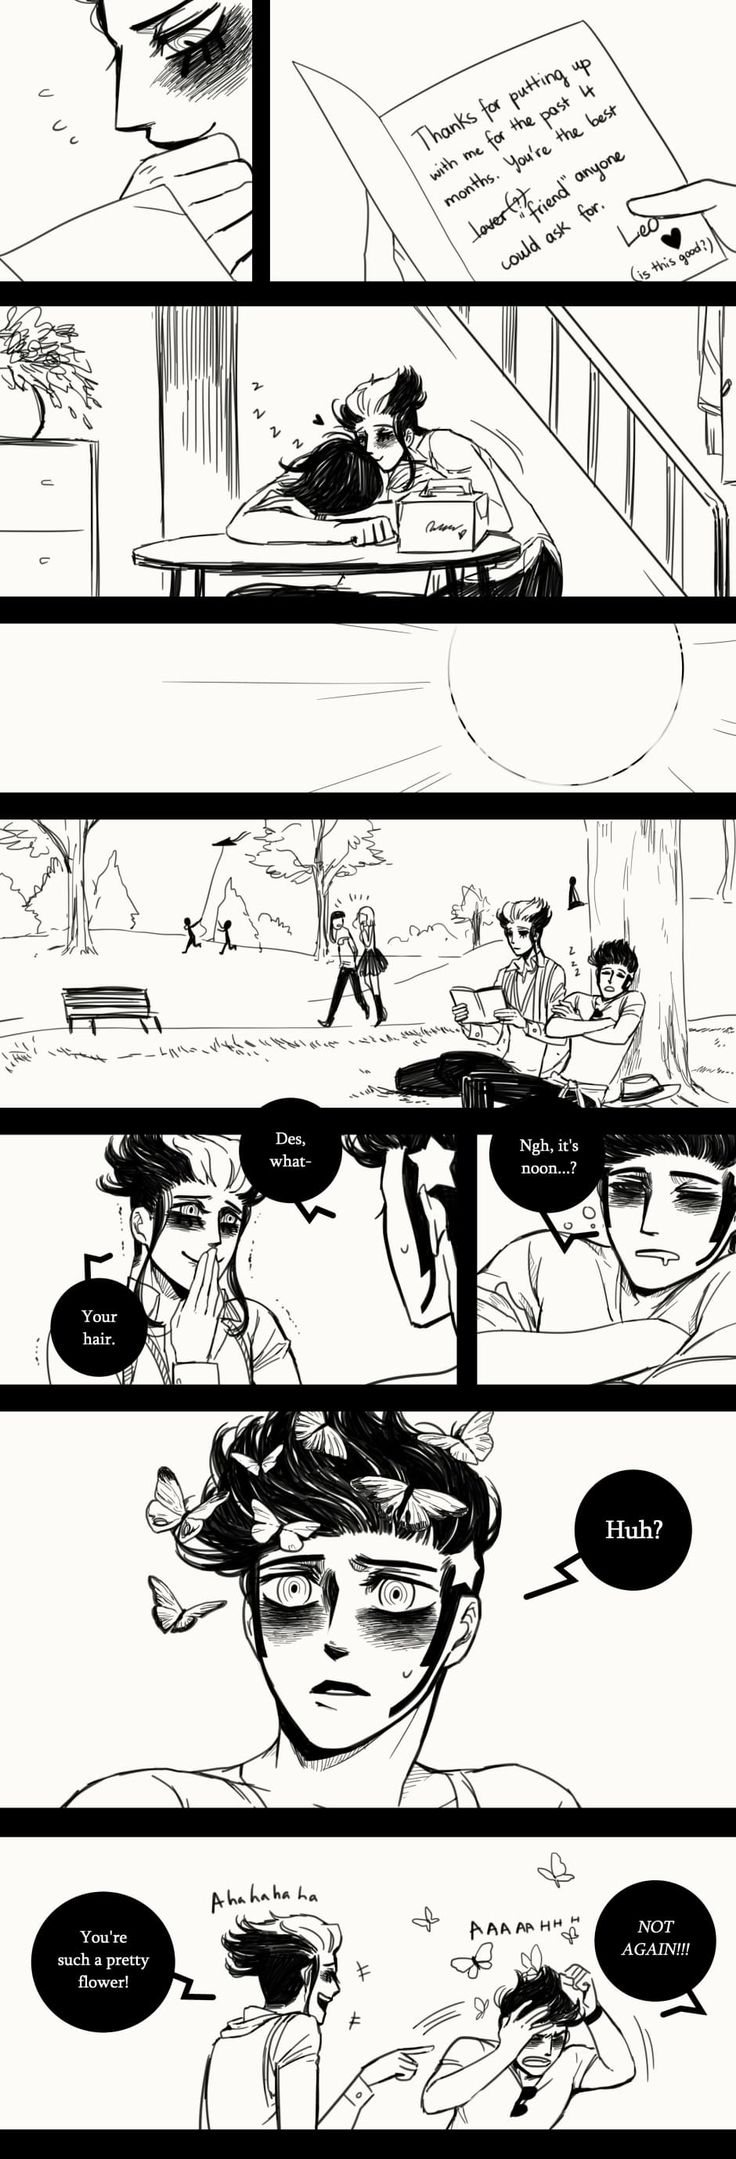 A Matter of Life and Death :: Special Episode: 1 Year Anniversary (Part 3) | Tapastic Comics - image 4